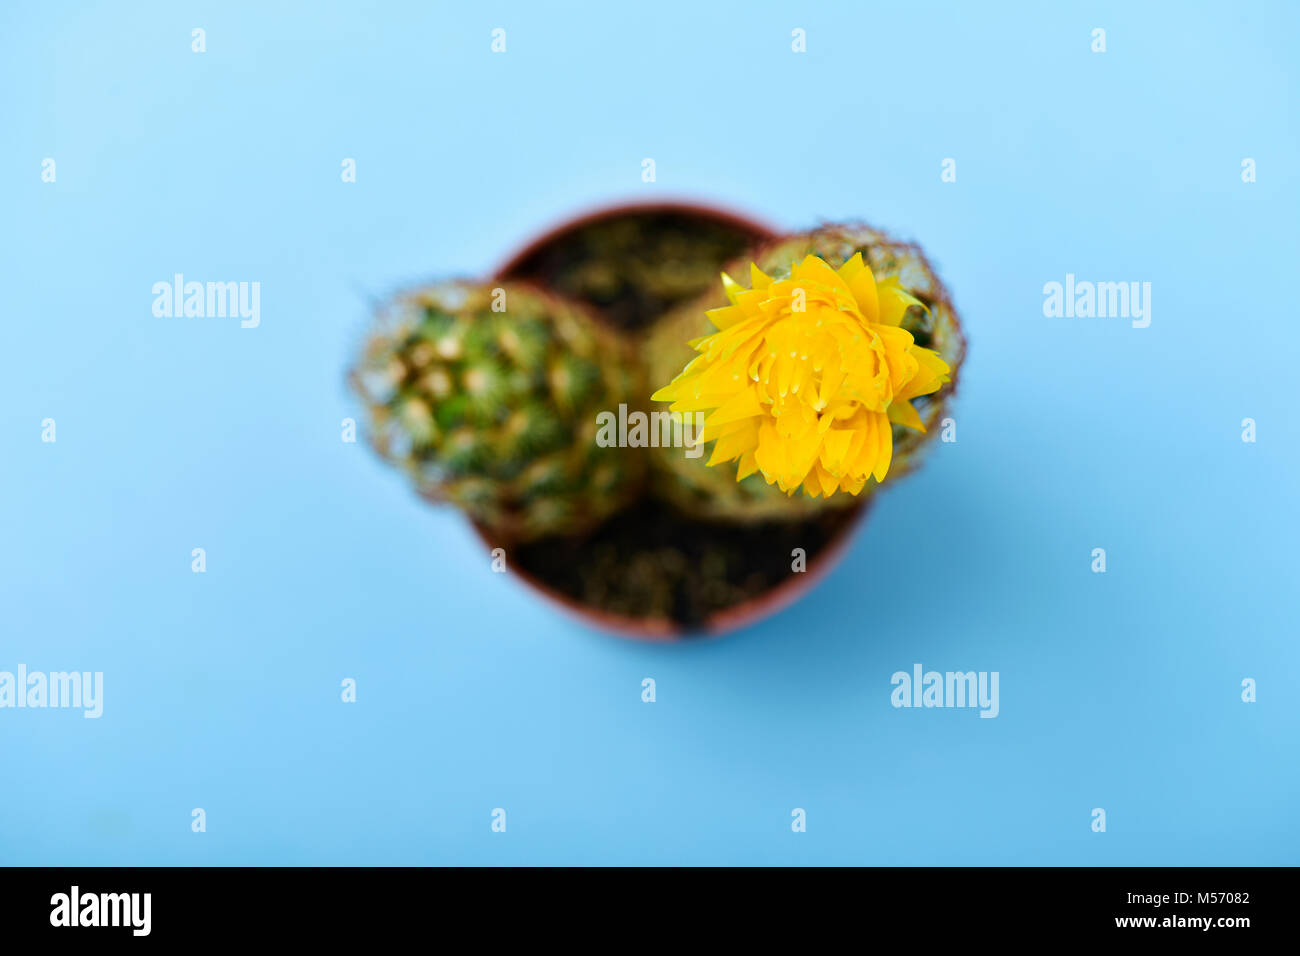 high angle view of a ladyfinger cactus, also known as gold lace cactus, with a yellow flower in a brown plant pot, - Stock Image